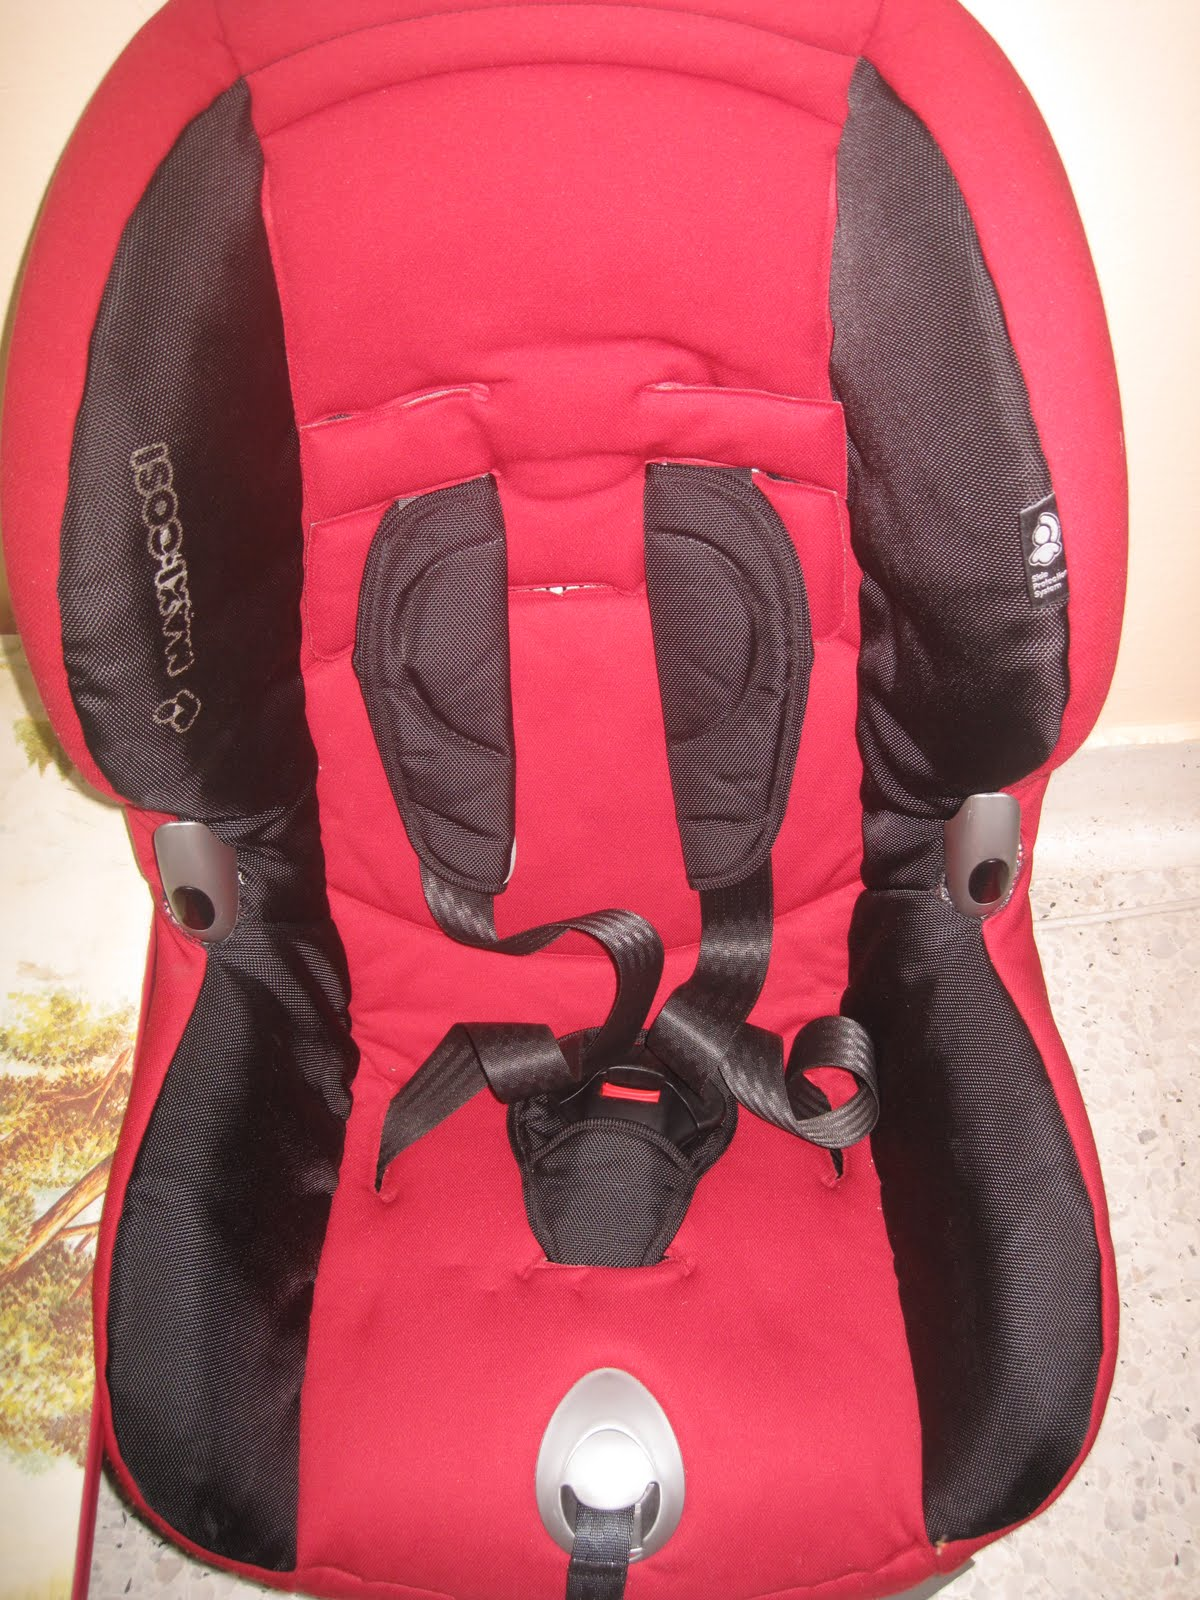 Rear Facing Car Seat Max Height Amy Sweety Store January 2012